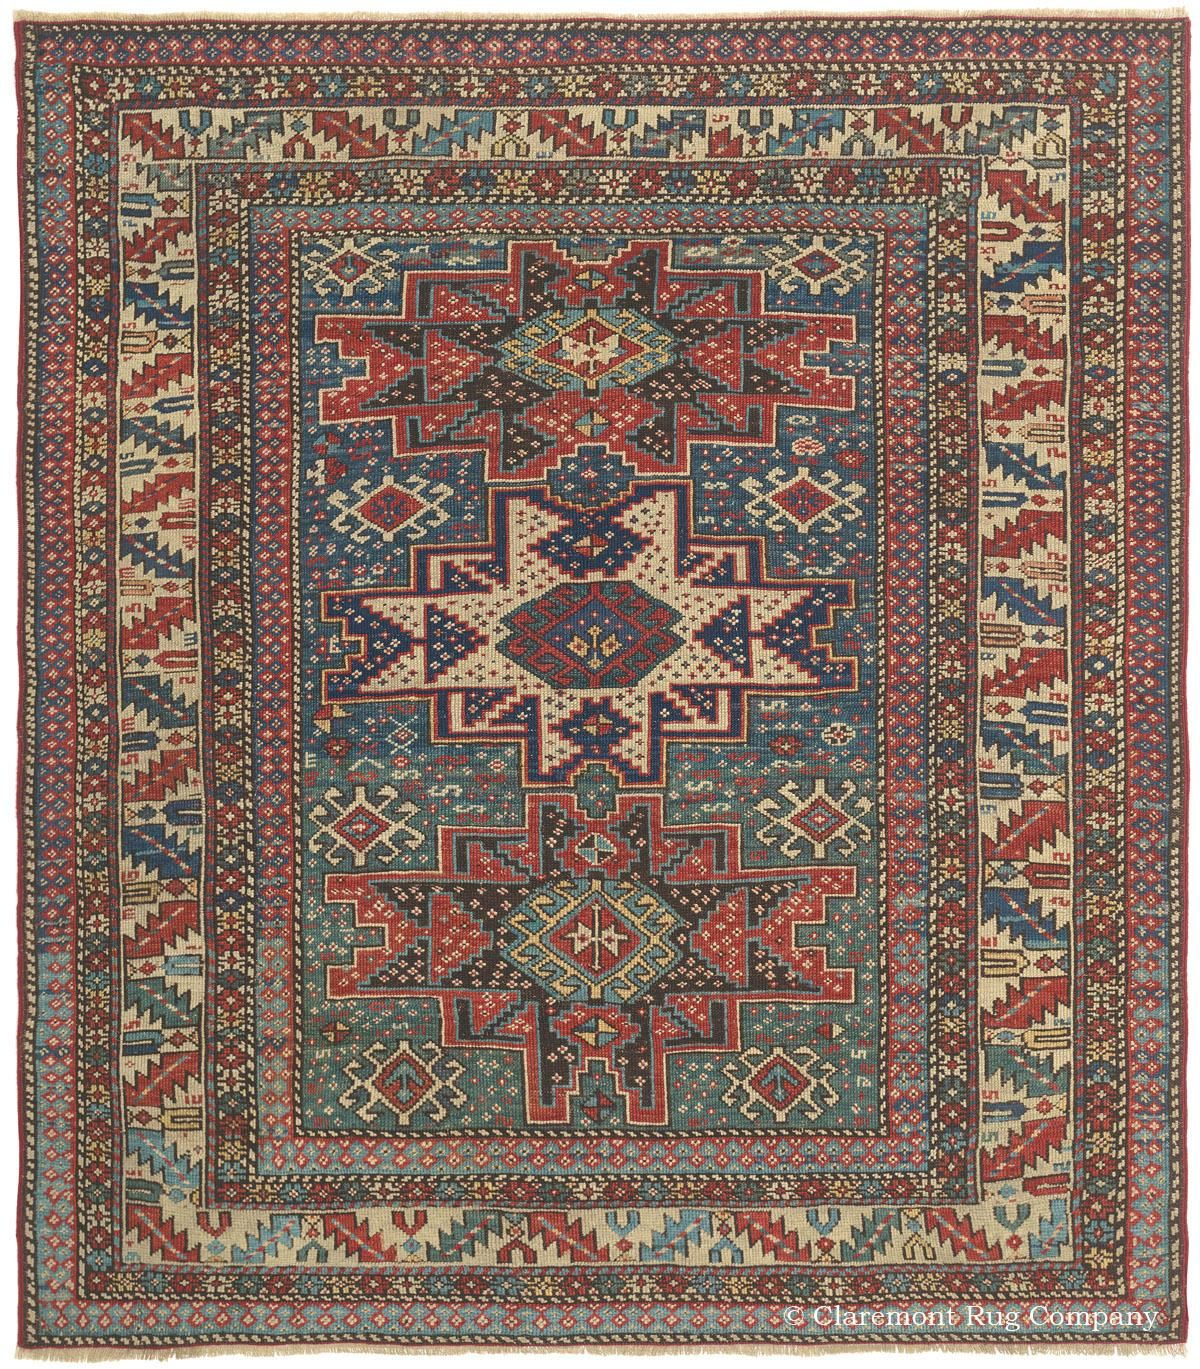 Basic Overview Of Antique Collectible Caucasian Rugs And Carpets Gobelen Idei Dekora Dlya Doma Kovry